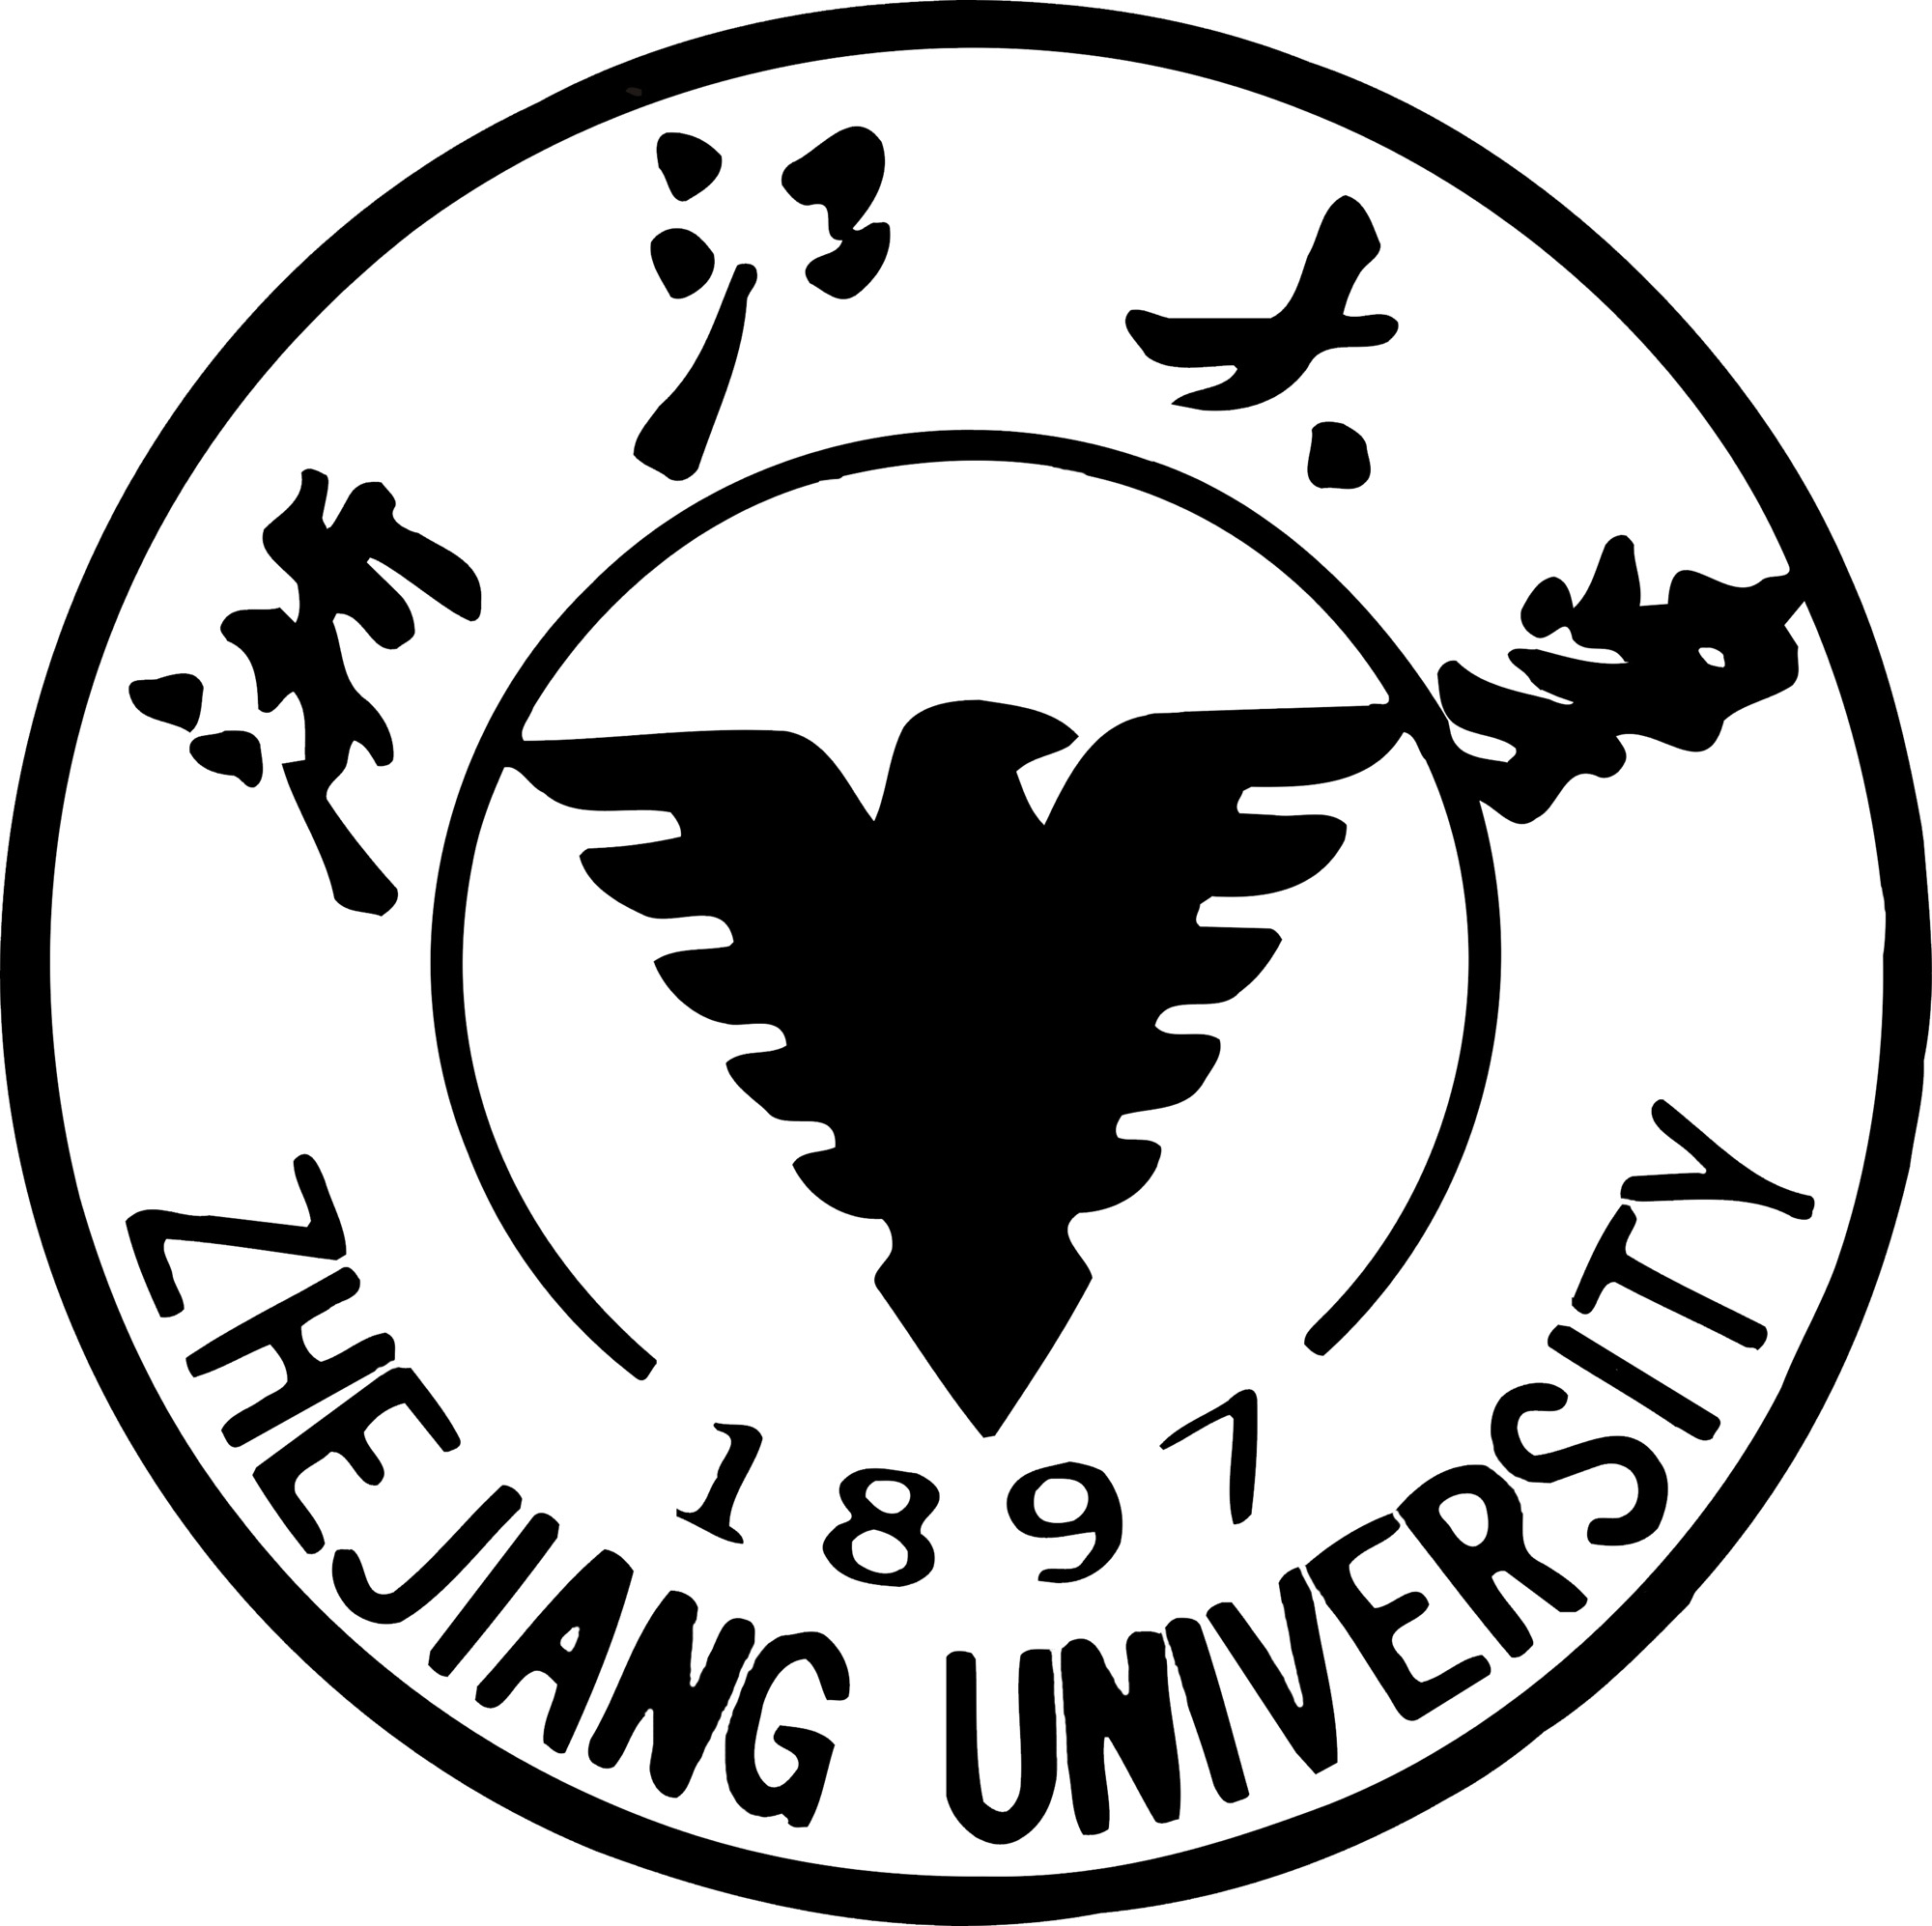 Logo Zhejiang University - School of Management